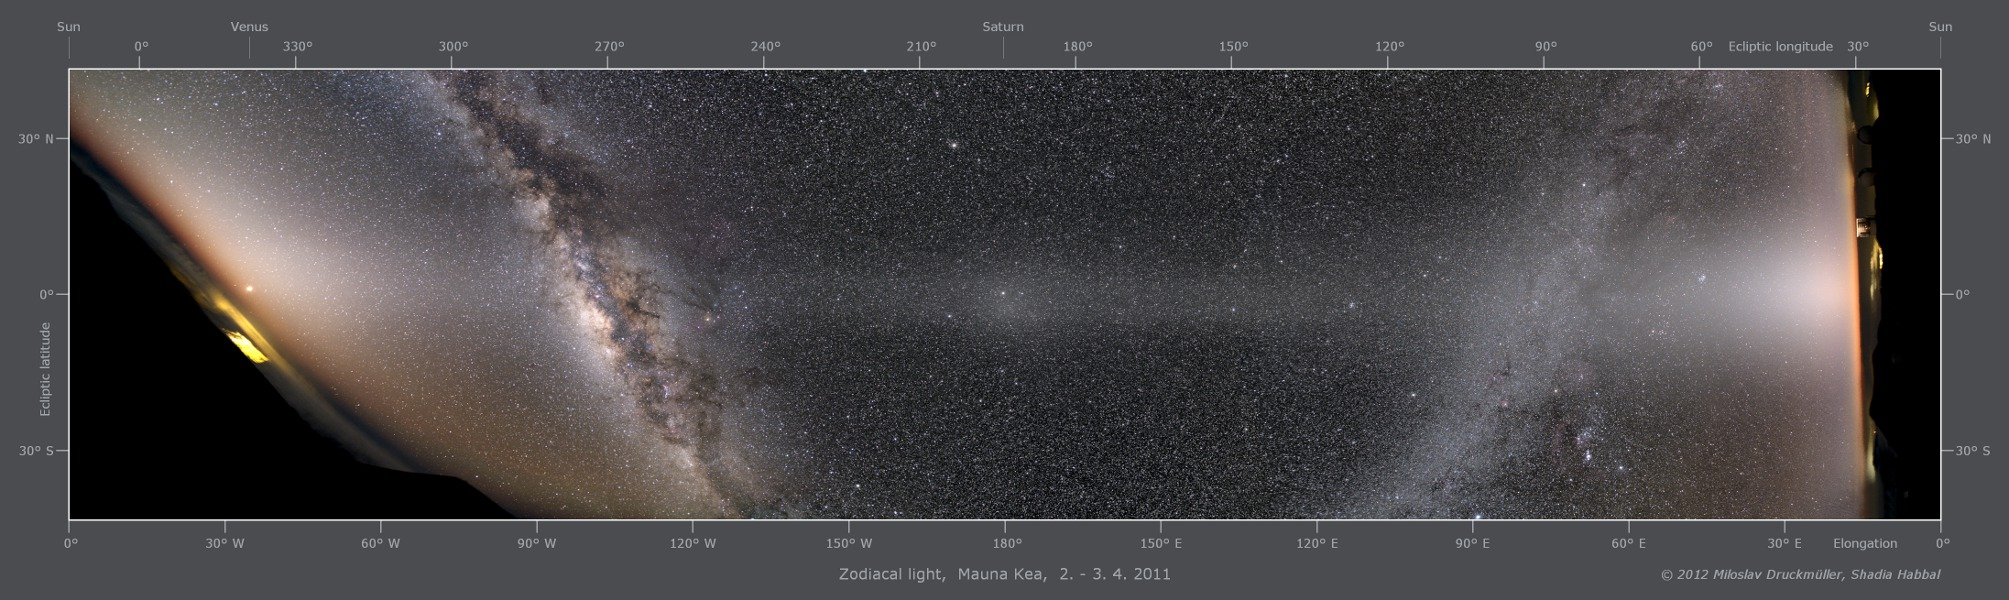 "See Explanation.  Clicking on the picture will download<br />  the highest resolution version available."" /></a></p> <p><center><strong> Zodiacal Light Panorama </strong><br /> <strong>Image Credit & <a href="